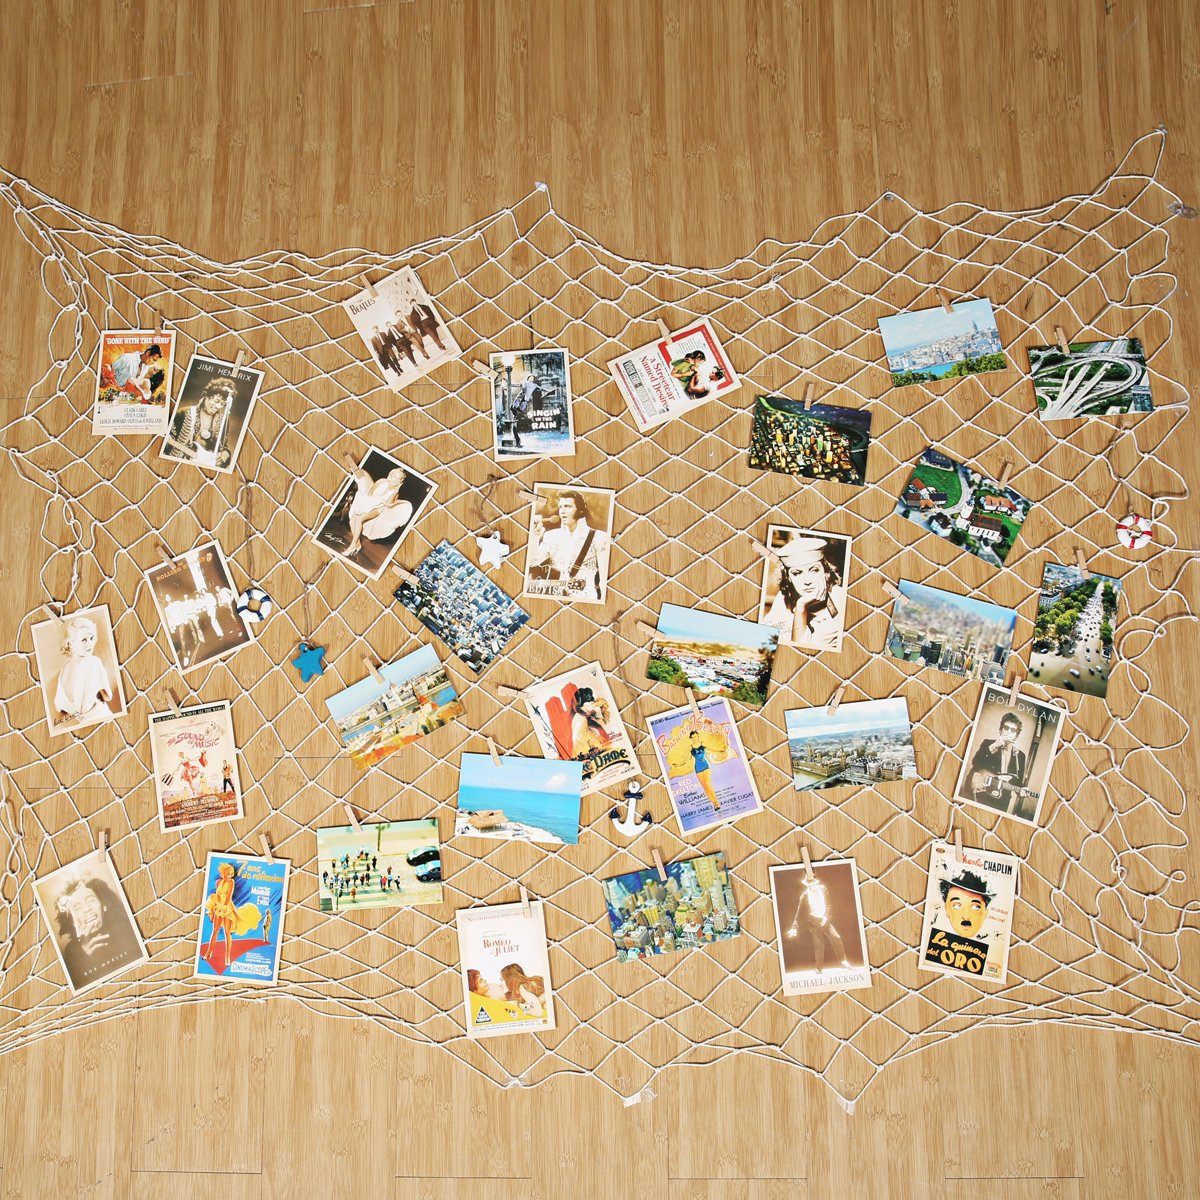 KINGSO 40 x 79 inch DIY Picture Photo Hanging Display Fishing Net Wall Decor 40Pcs Clips 40Pcs Hidden Nails 5Pcs Mediterranean Prop Picture Cards Collage Artworks Organizer White KINGSOokiuhg3646